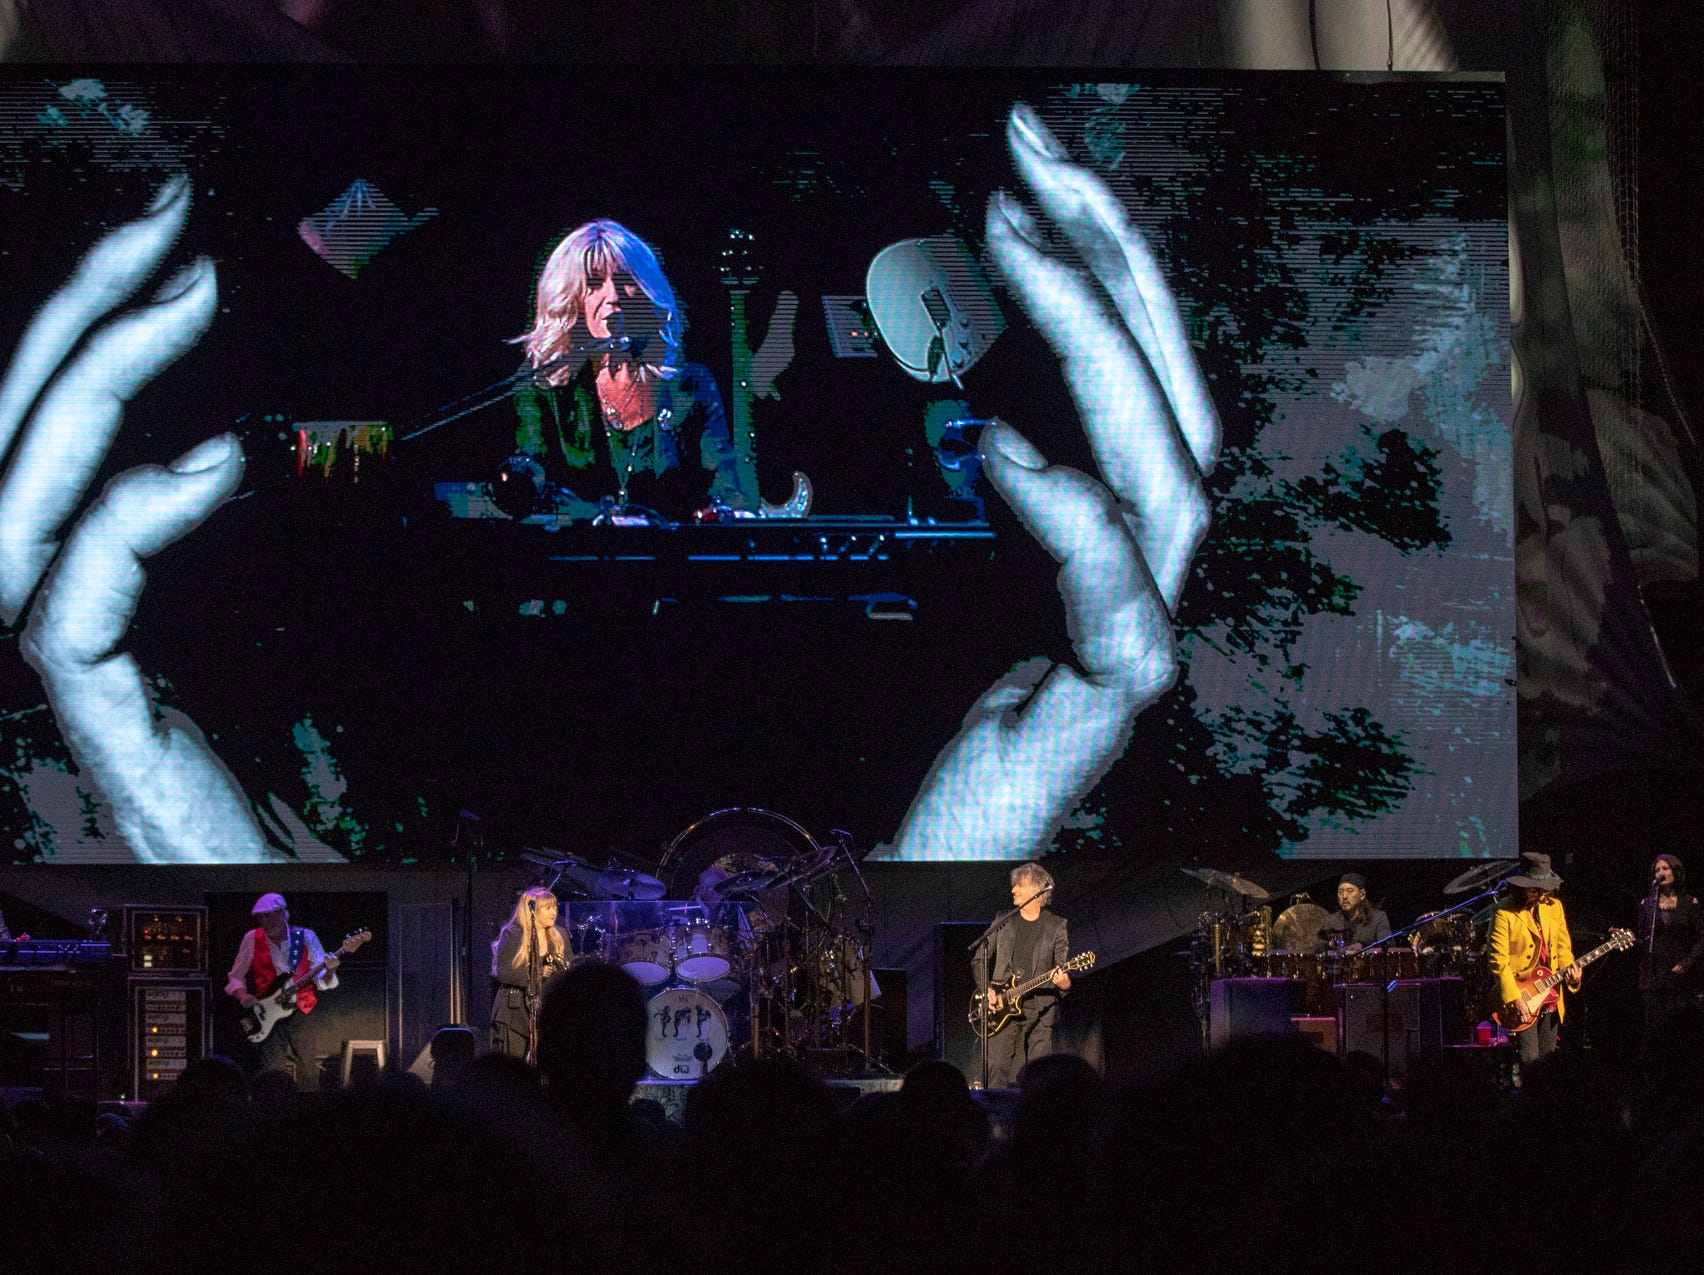 A performance by Fleetwood Mac at Bankers Life Fieldhouse, Indianapolis, Tuesday, Oct. 16, 2018. The band is playing on their current North American tour.